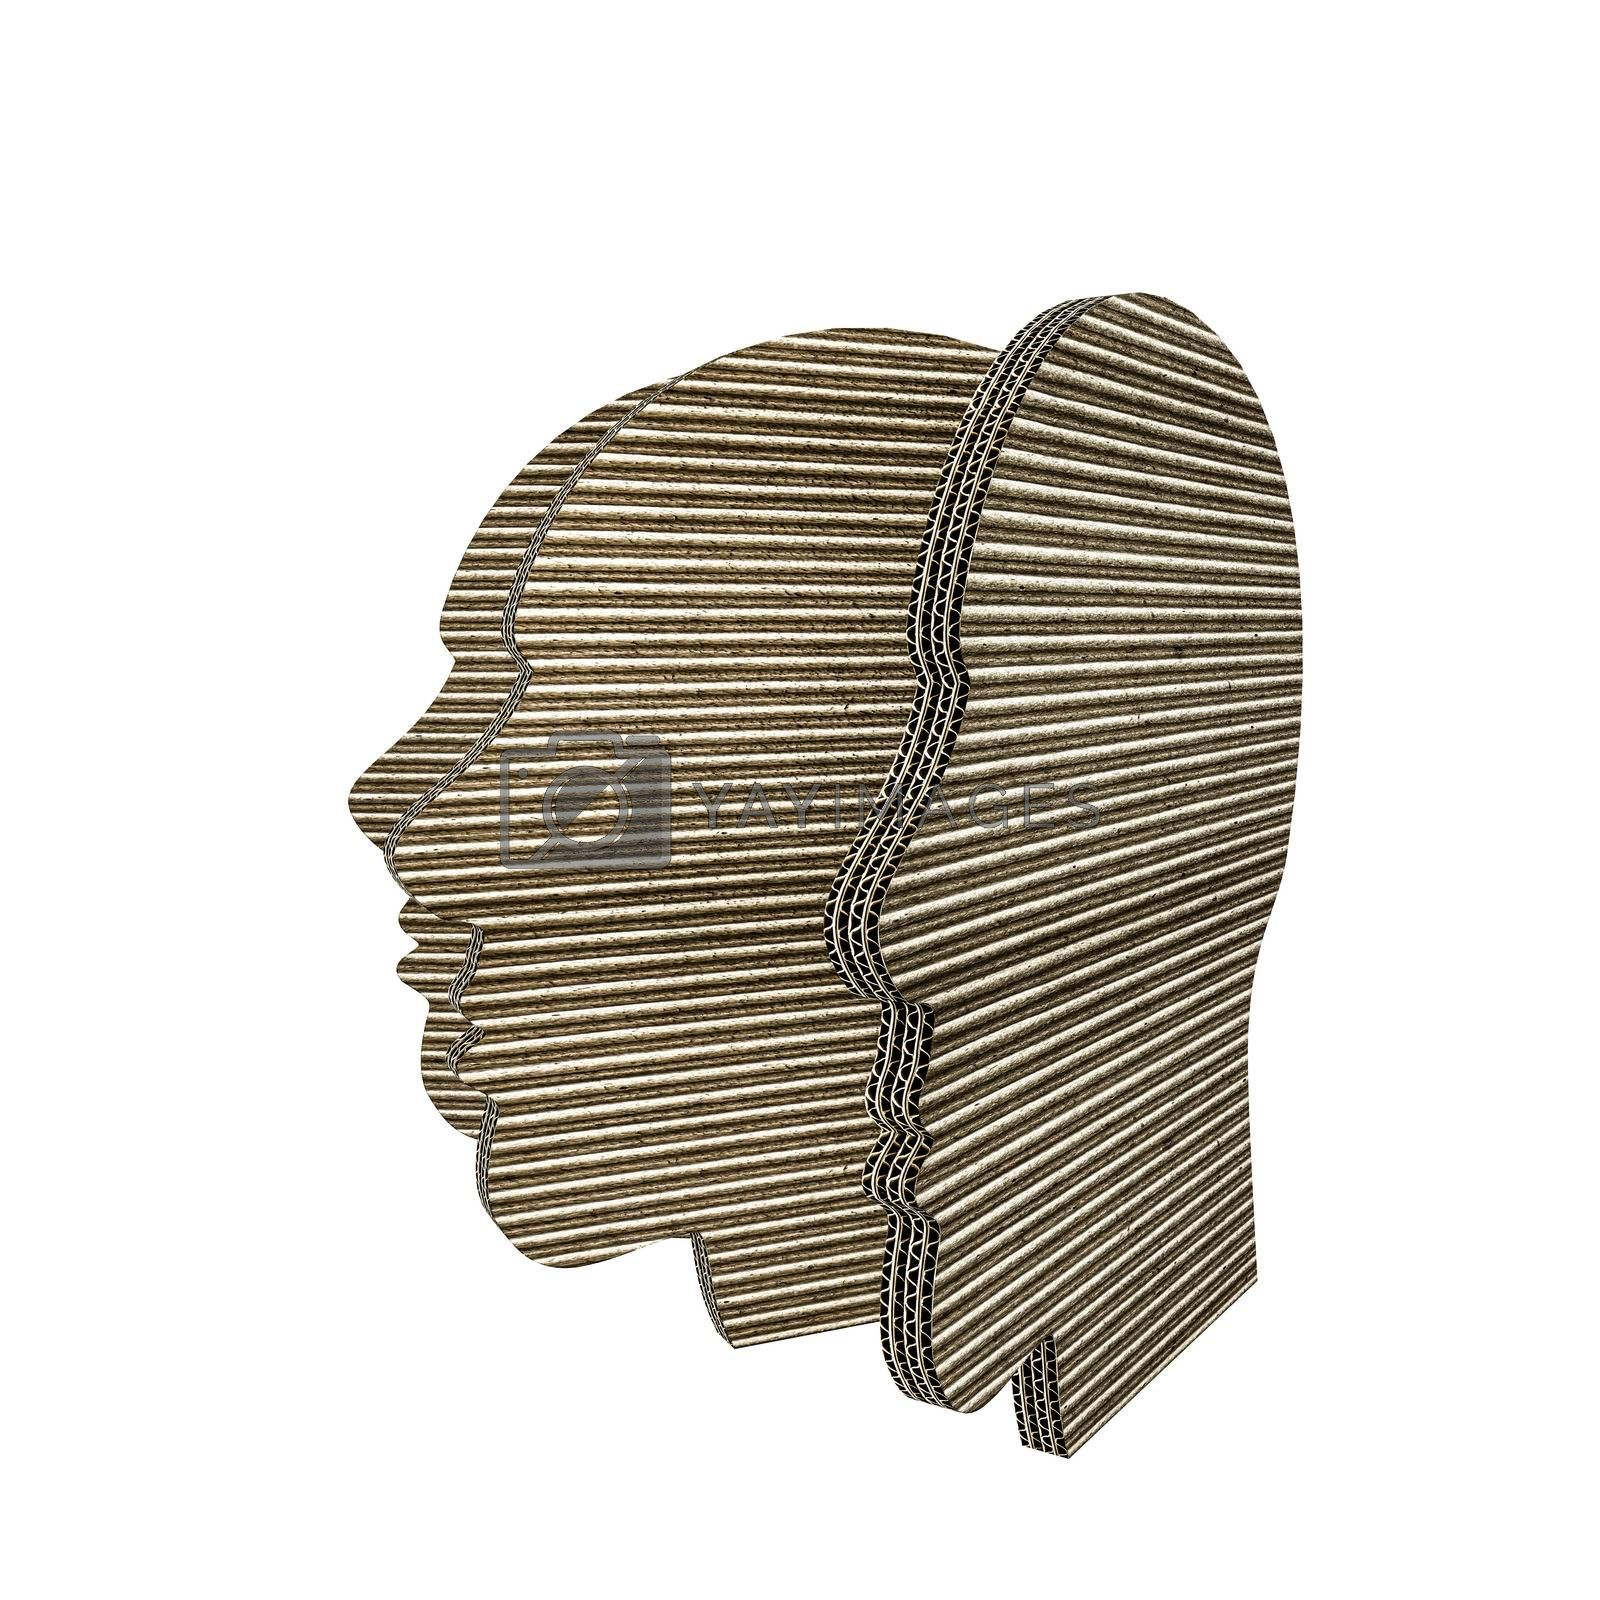 3d illustration of cardboard heads isolated on white background